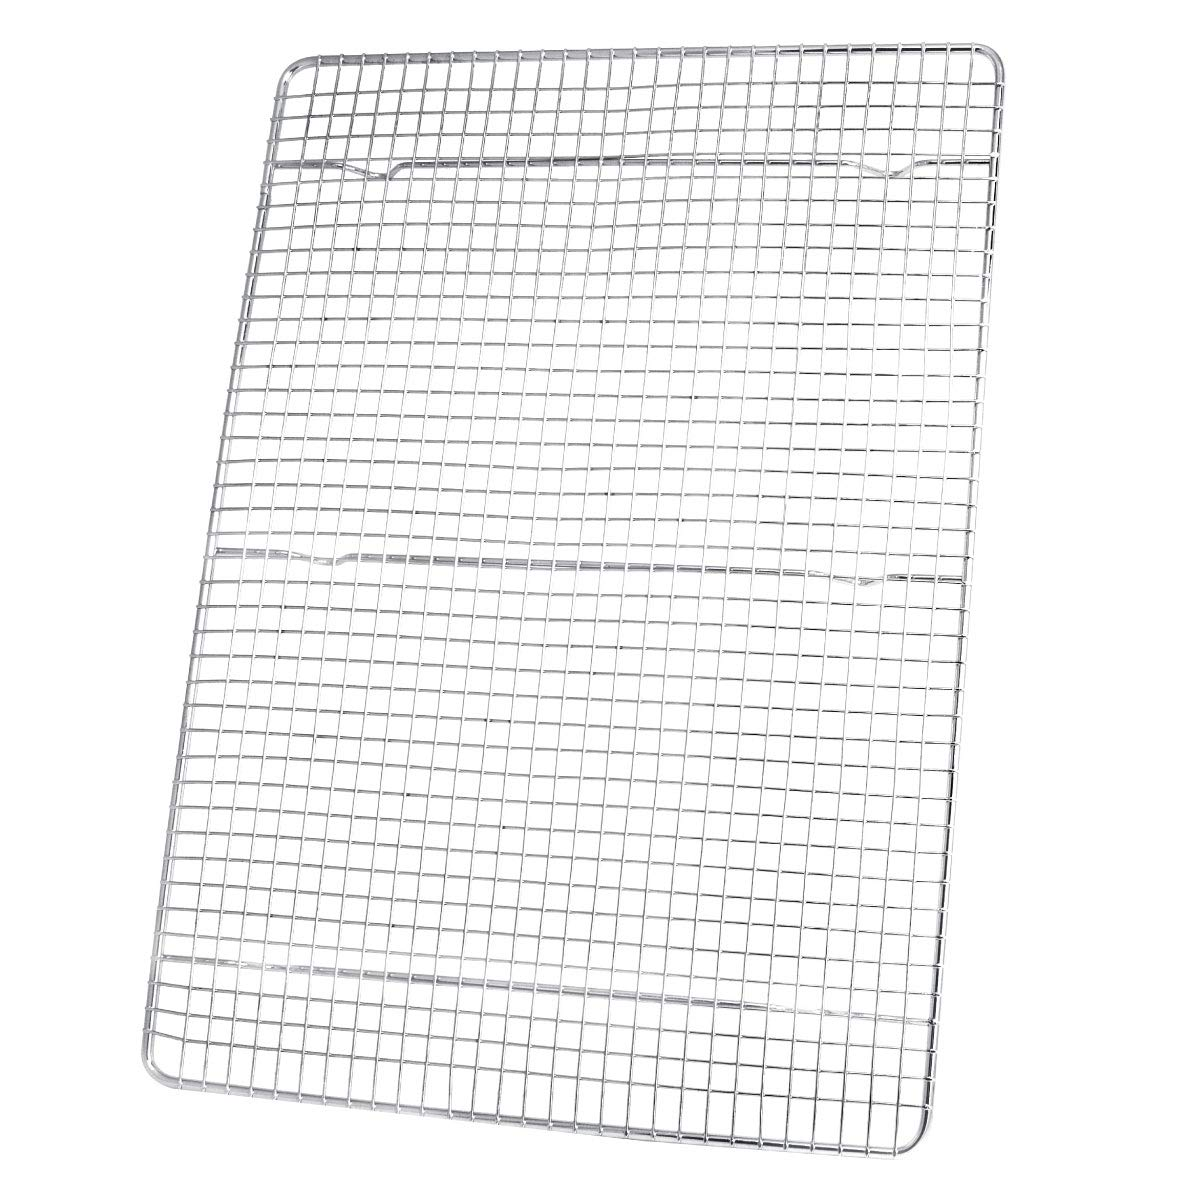 TOP KITCHEN Cooling Rack Baking Rack, Oven Safe, Stainless Steel Fits Half Size Sheet Pan, 16-1/2'' x 11-1/2''